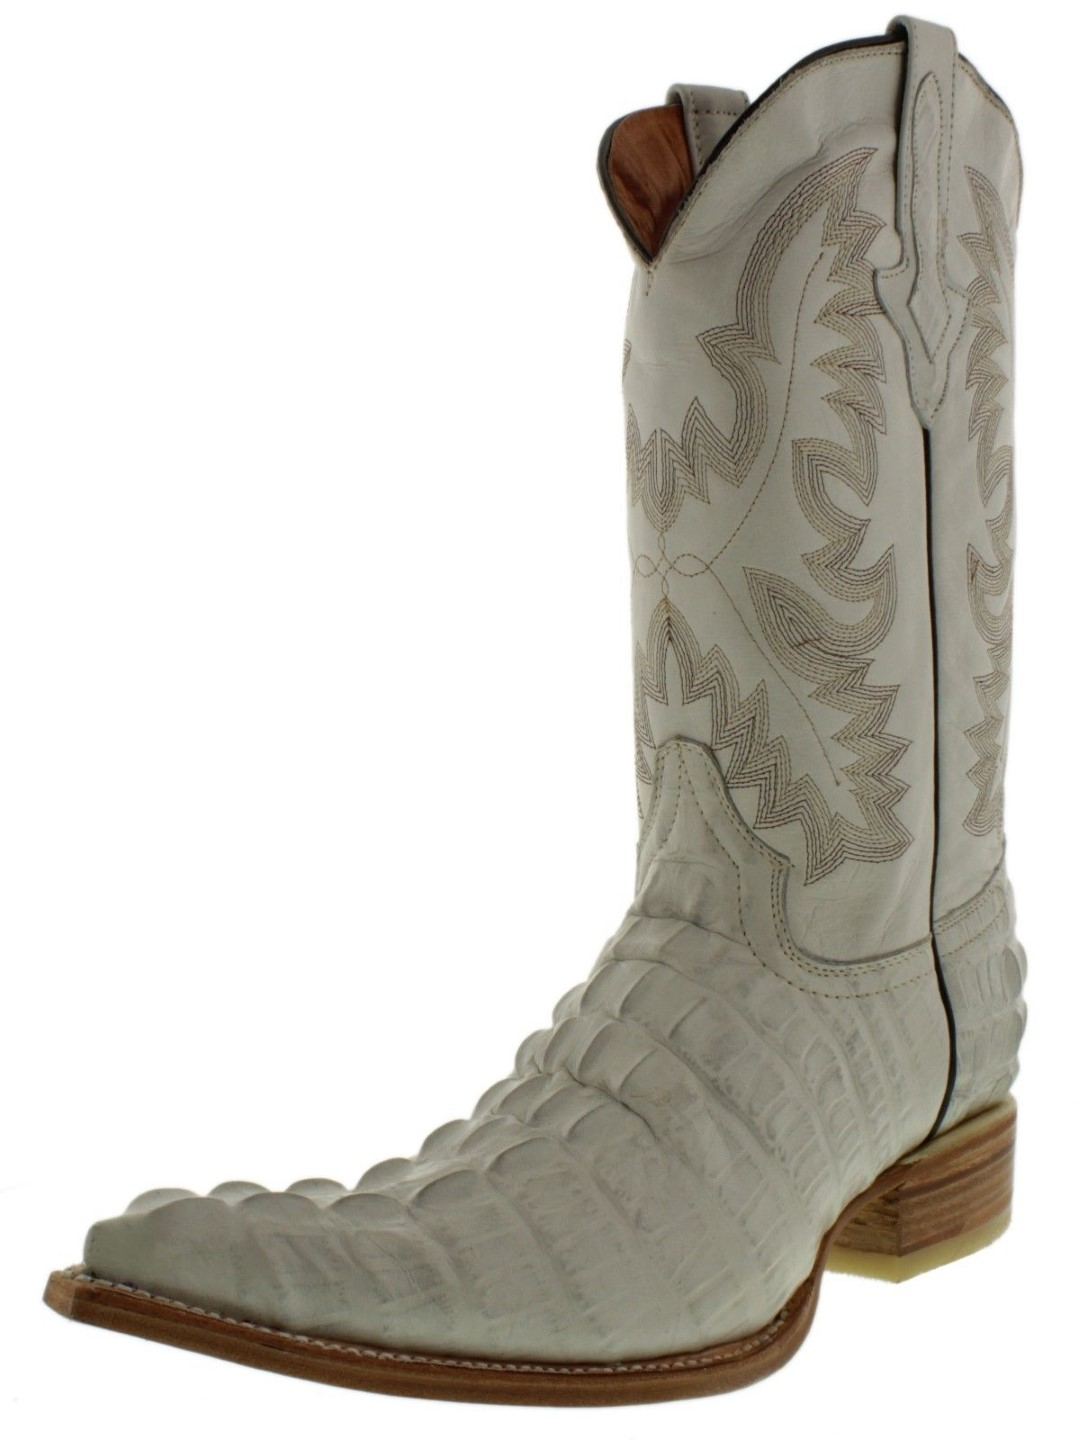 3bb519c3dafb Mens Off White Alligator Tail Print Western Leather Cowboy Boots Tan ...